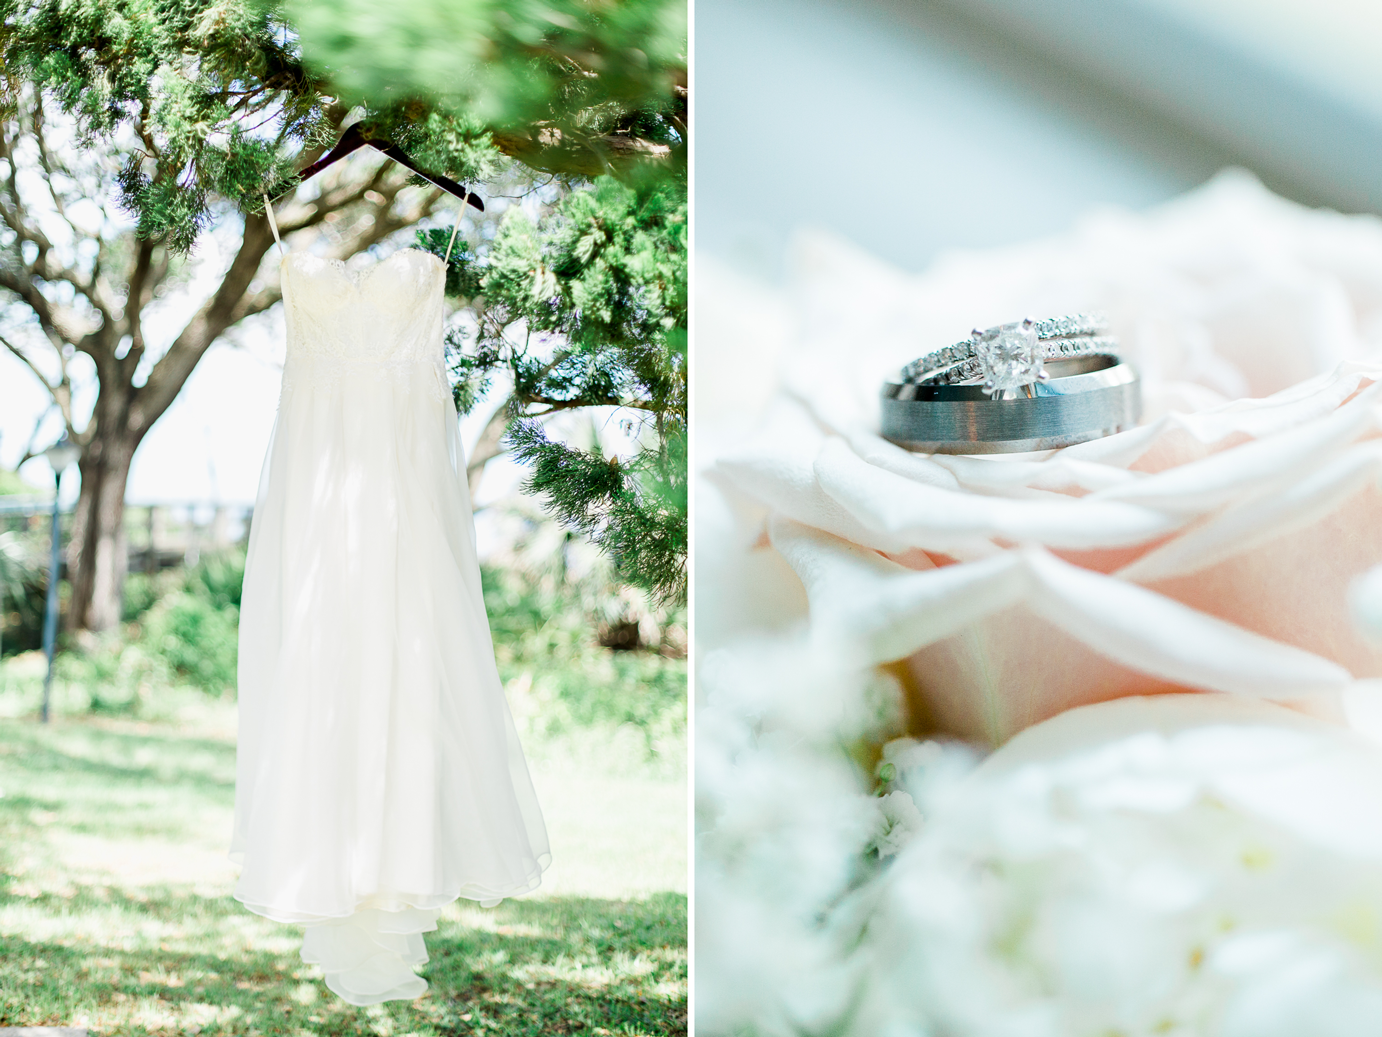 Stunning wedding dress and rings on a bouqet